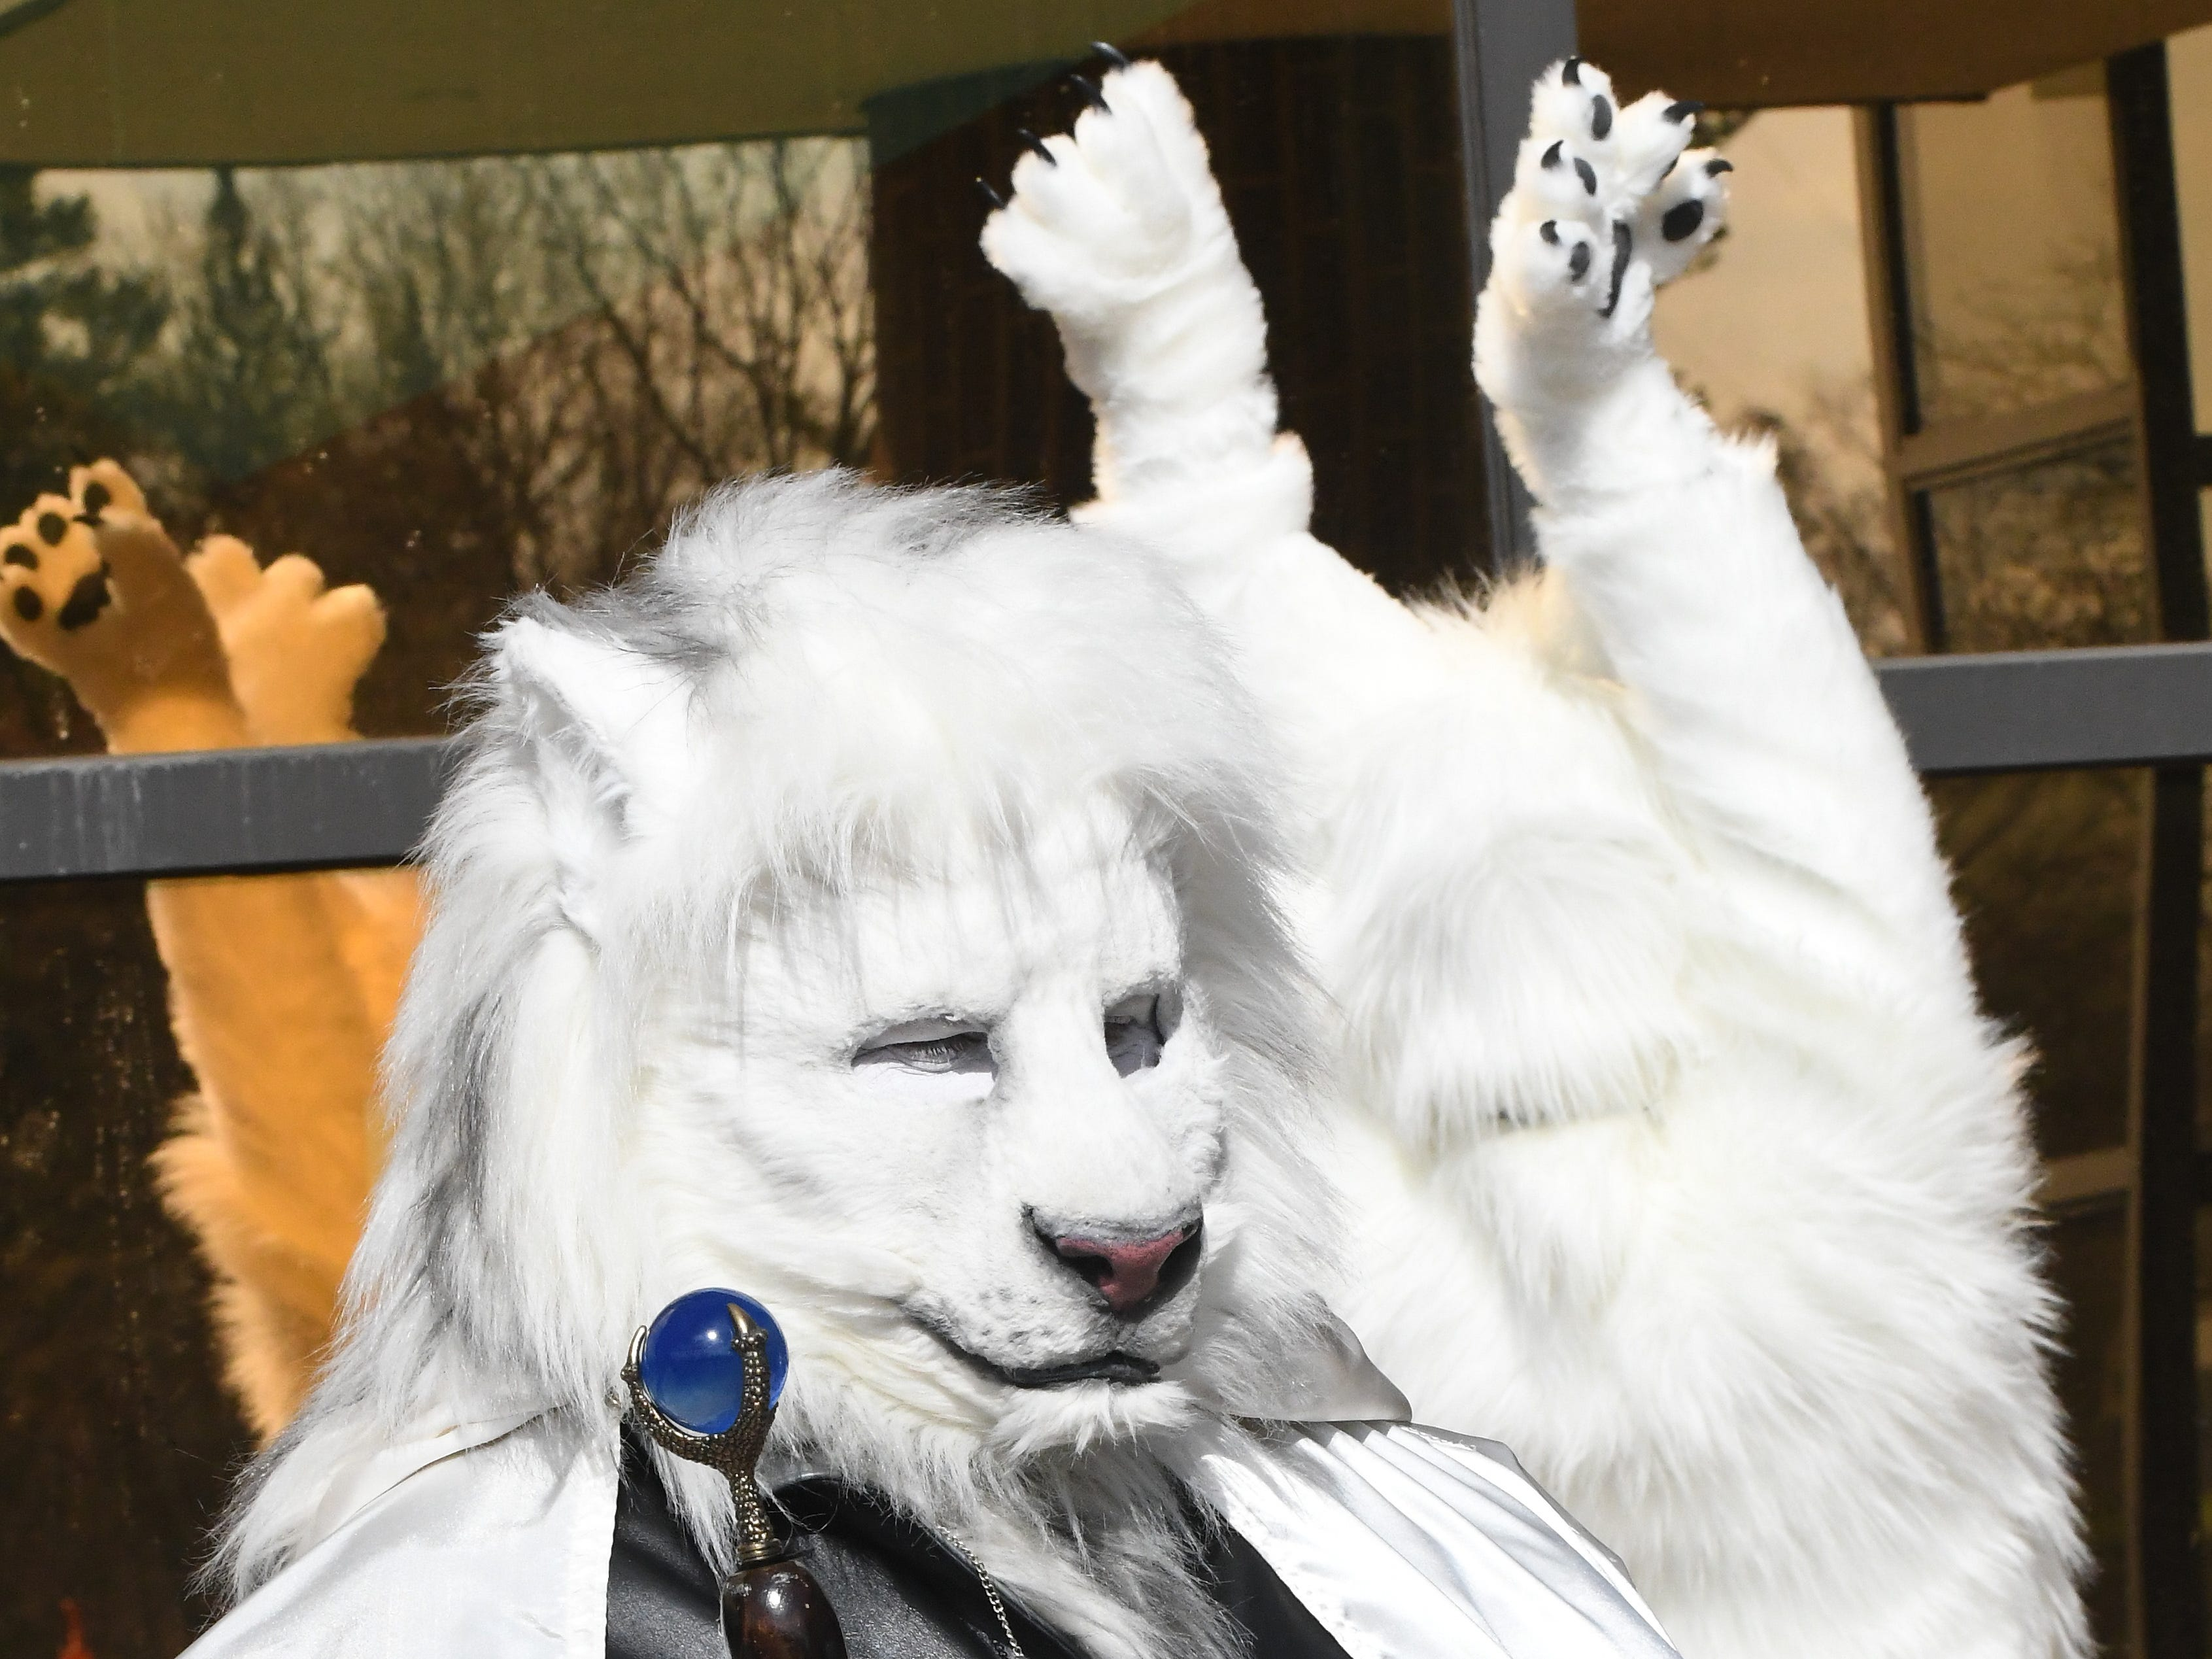 A regal furry outside the 2019 Motor City Furry Con at the Westin Detroit-Southfield in Southfield on April 12, 2019. Motor City Furry Convention is Michigan's 18+ anthropomorphic appreciation convention for furries and furry fans alike.